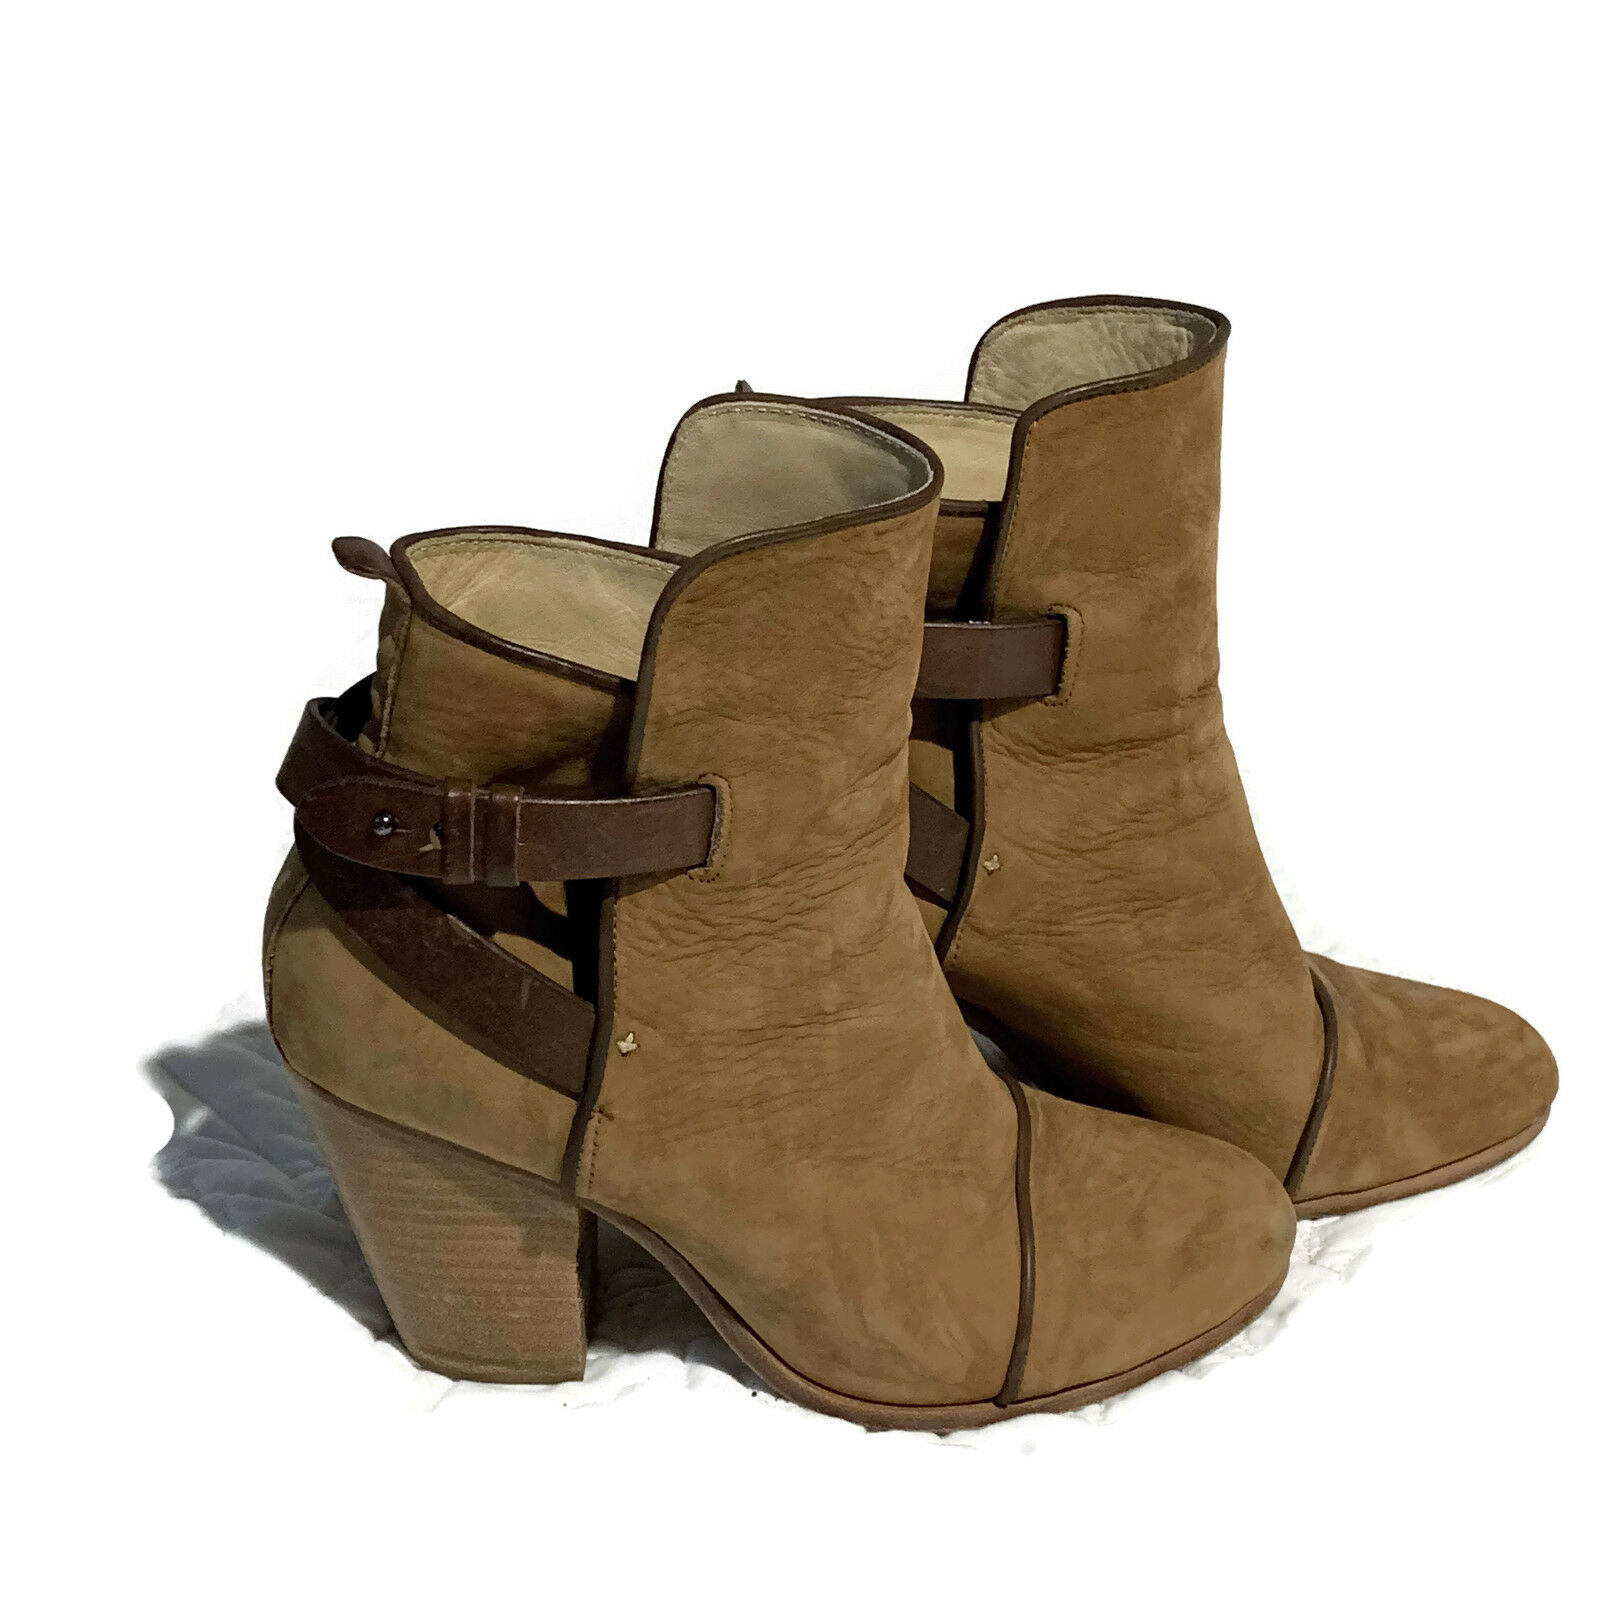 Rag & Bone Brown Suede Leather Ankle Booties Size10 US